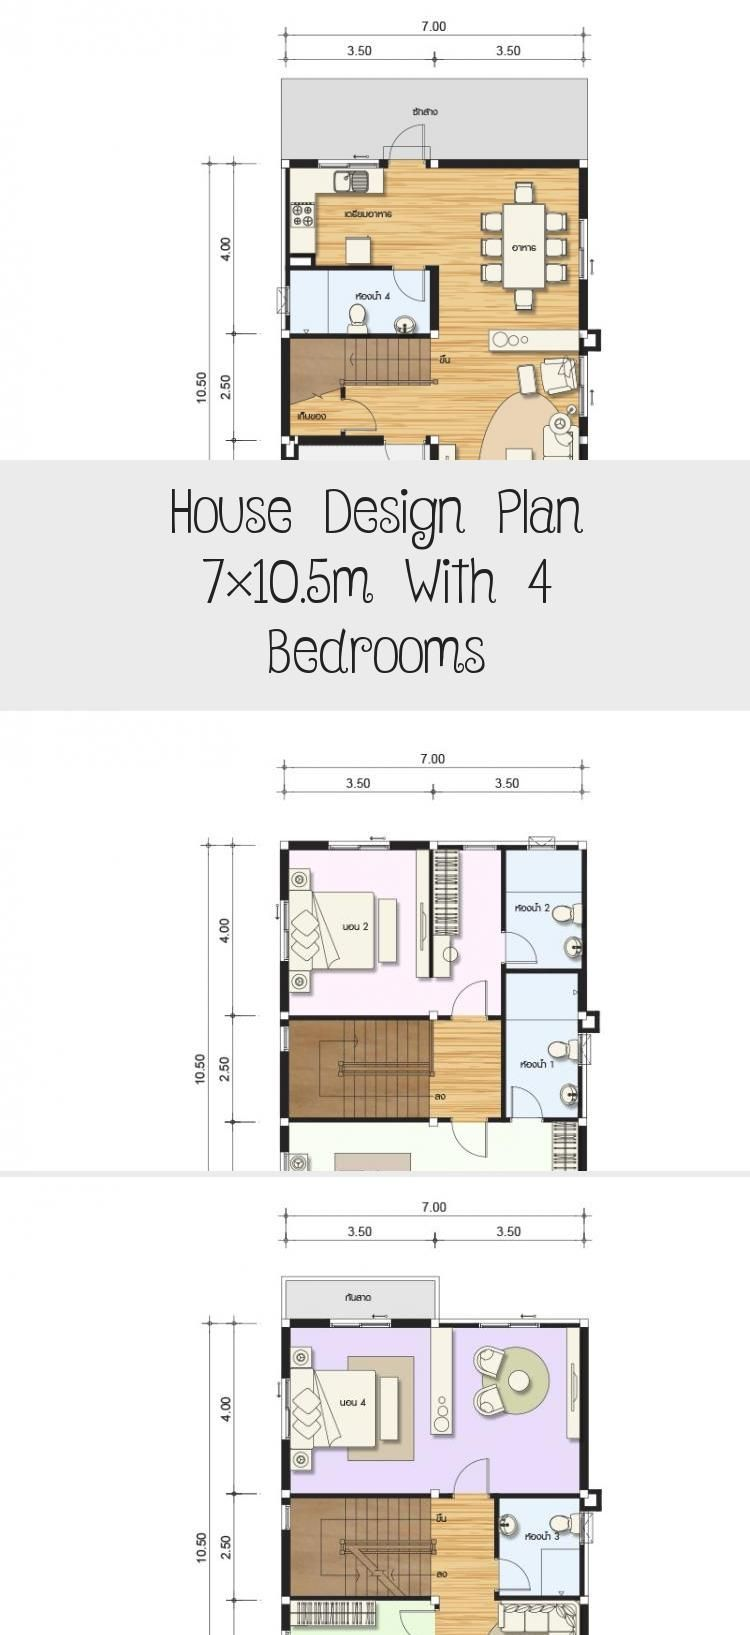 House Design Plan 7x10 5m With 4 Bedrooms Home Design With Plansearch Housedesignideas Lakehousedesi In 2020 Ranch House Designs Home Design Plan Home Design Plans